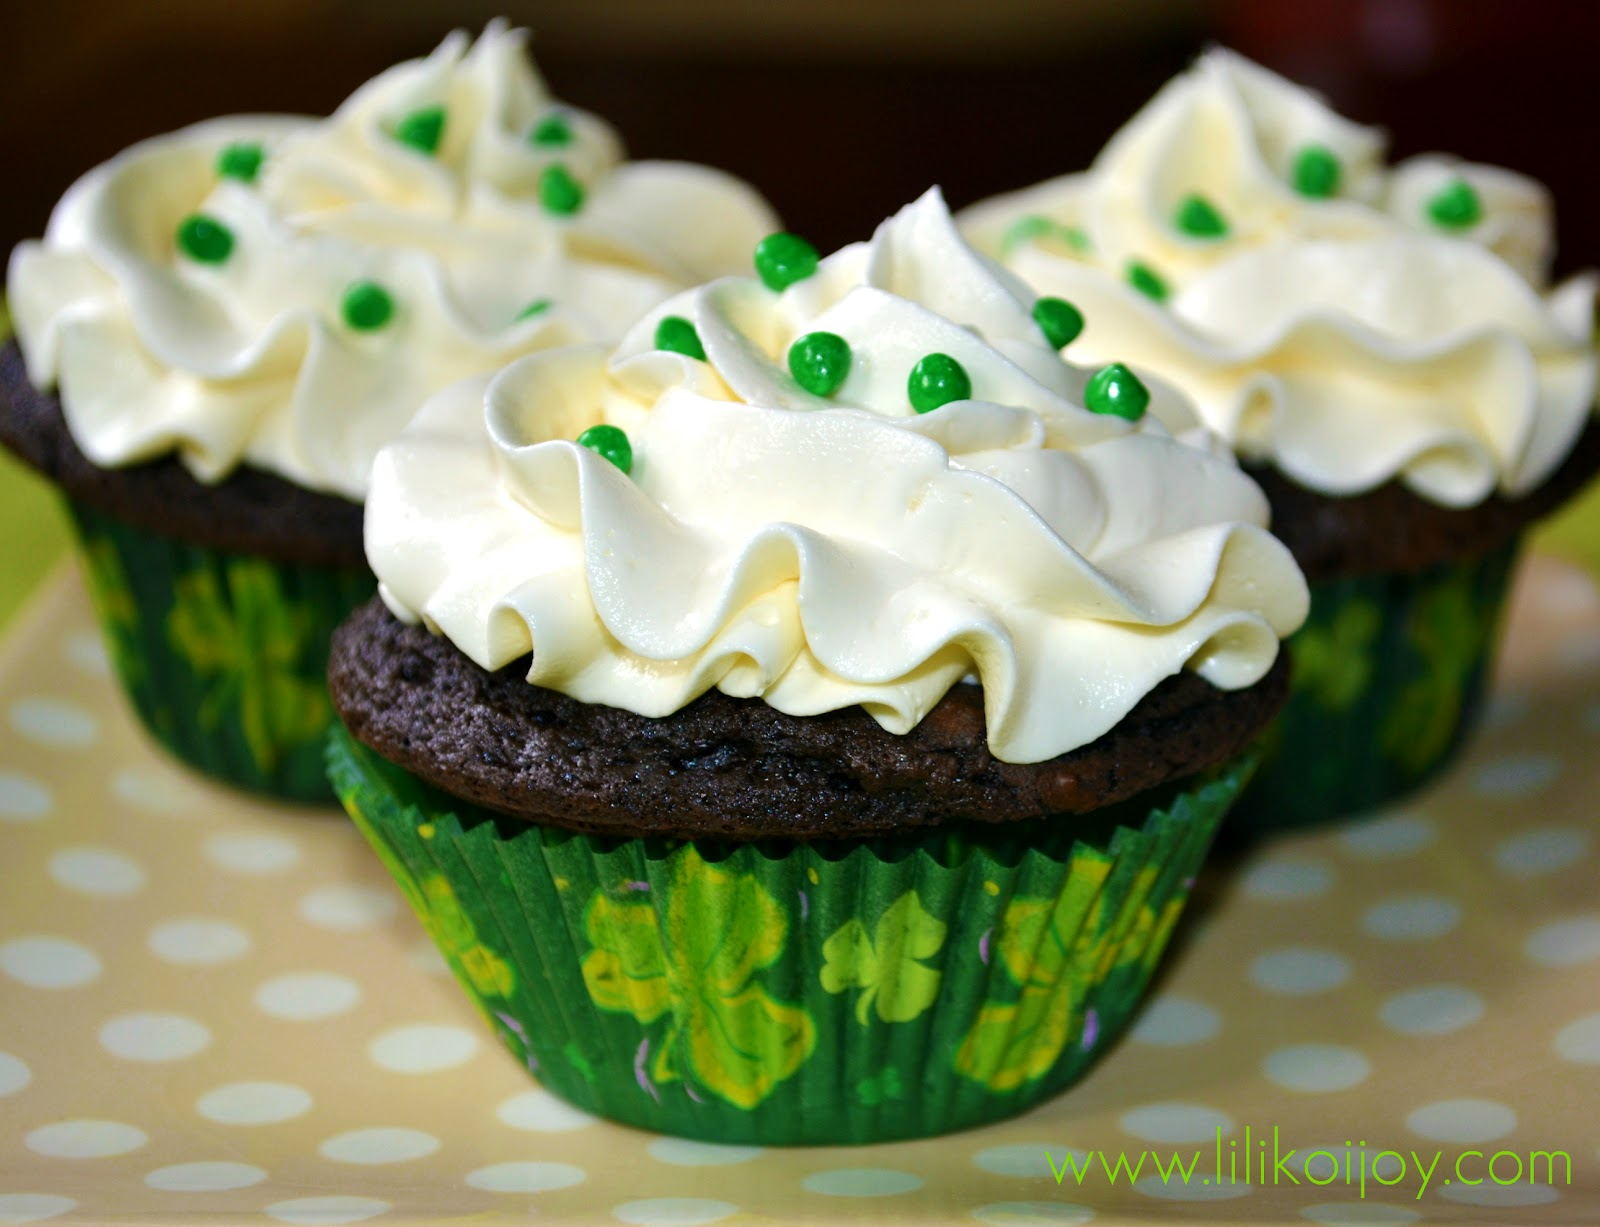 Dark-Chocolate Mint Cupcakes With White-Chocolate Mint Frosting ...